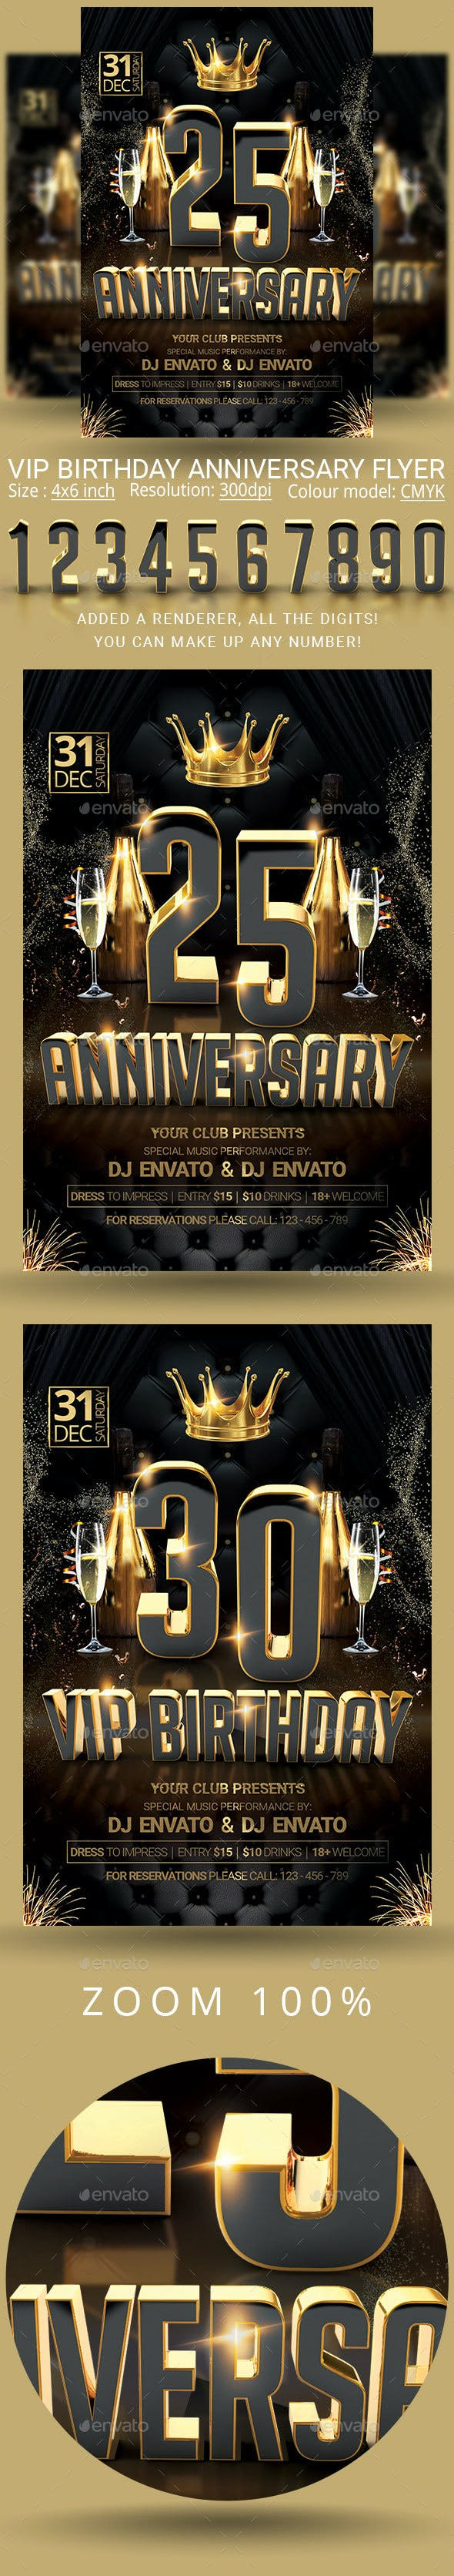 anniversary vip birthday party flyer by oloreon graphicriver